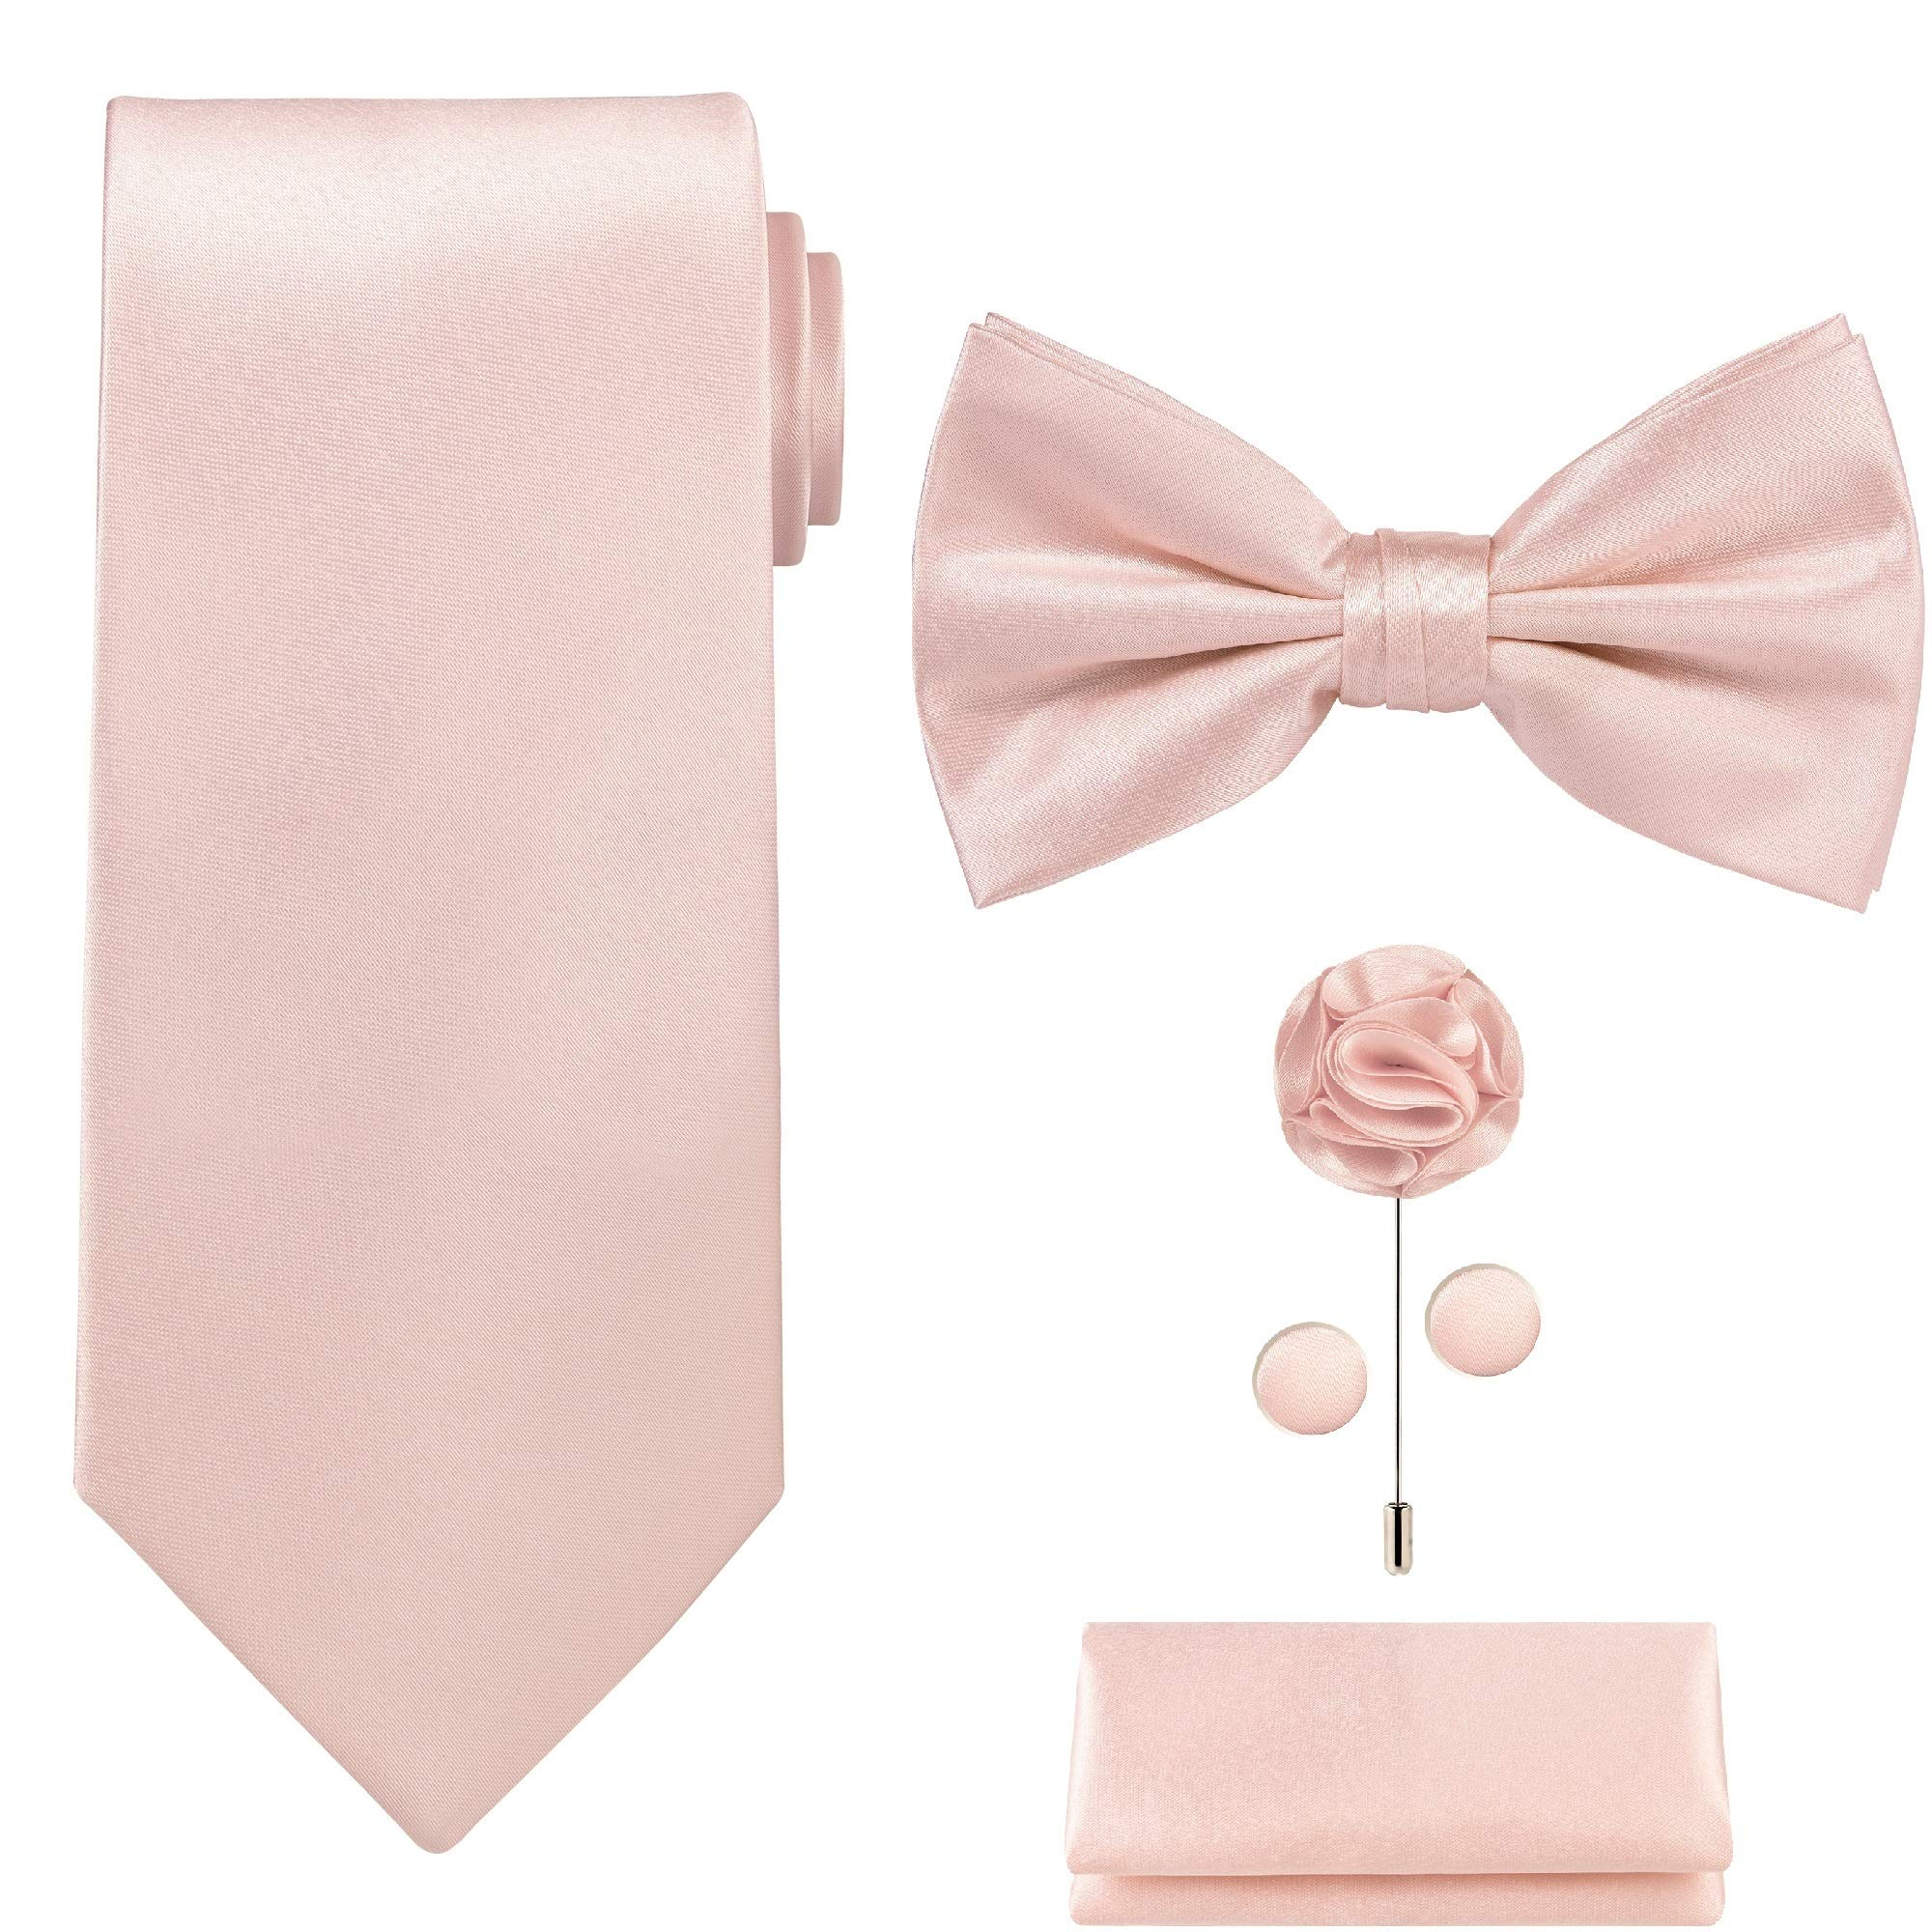 5pcs Tie set in a gift box : Tie sets : Solid color Neck tie,Satin Bow tie,Pocket Square, Lapel, Cuffs link (Blush Pink) by Tie G U Style